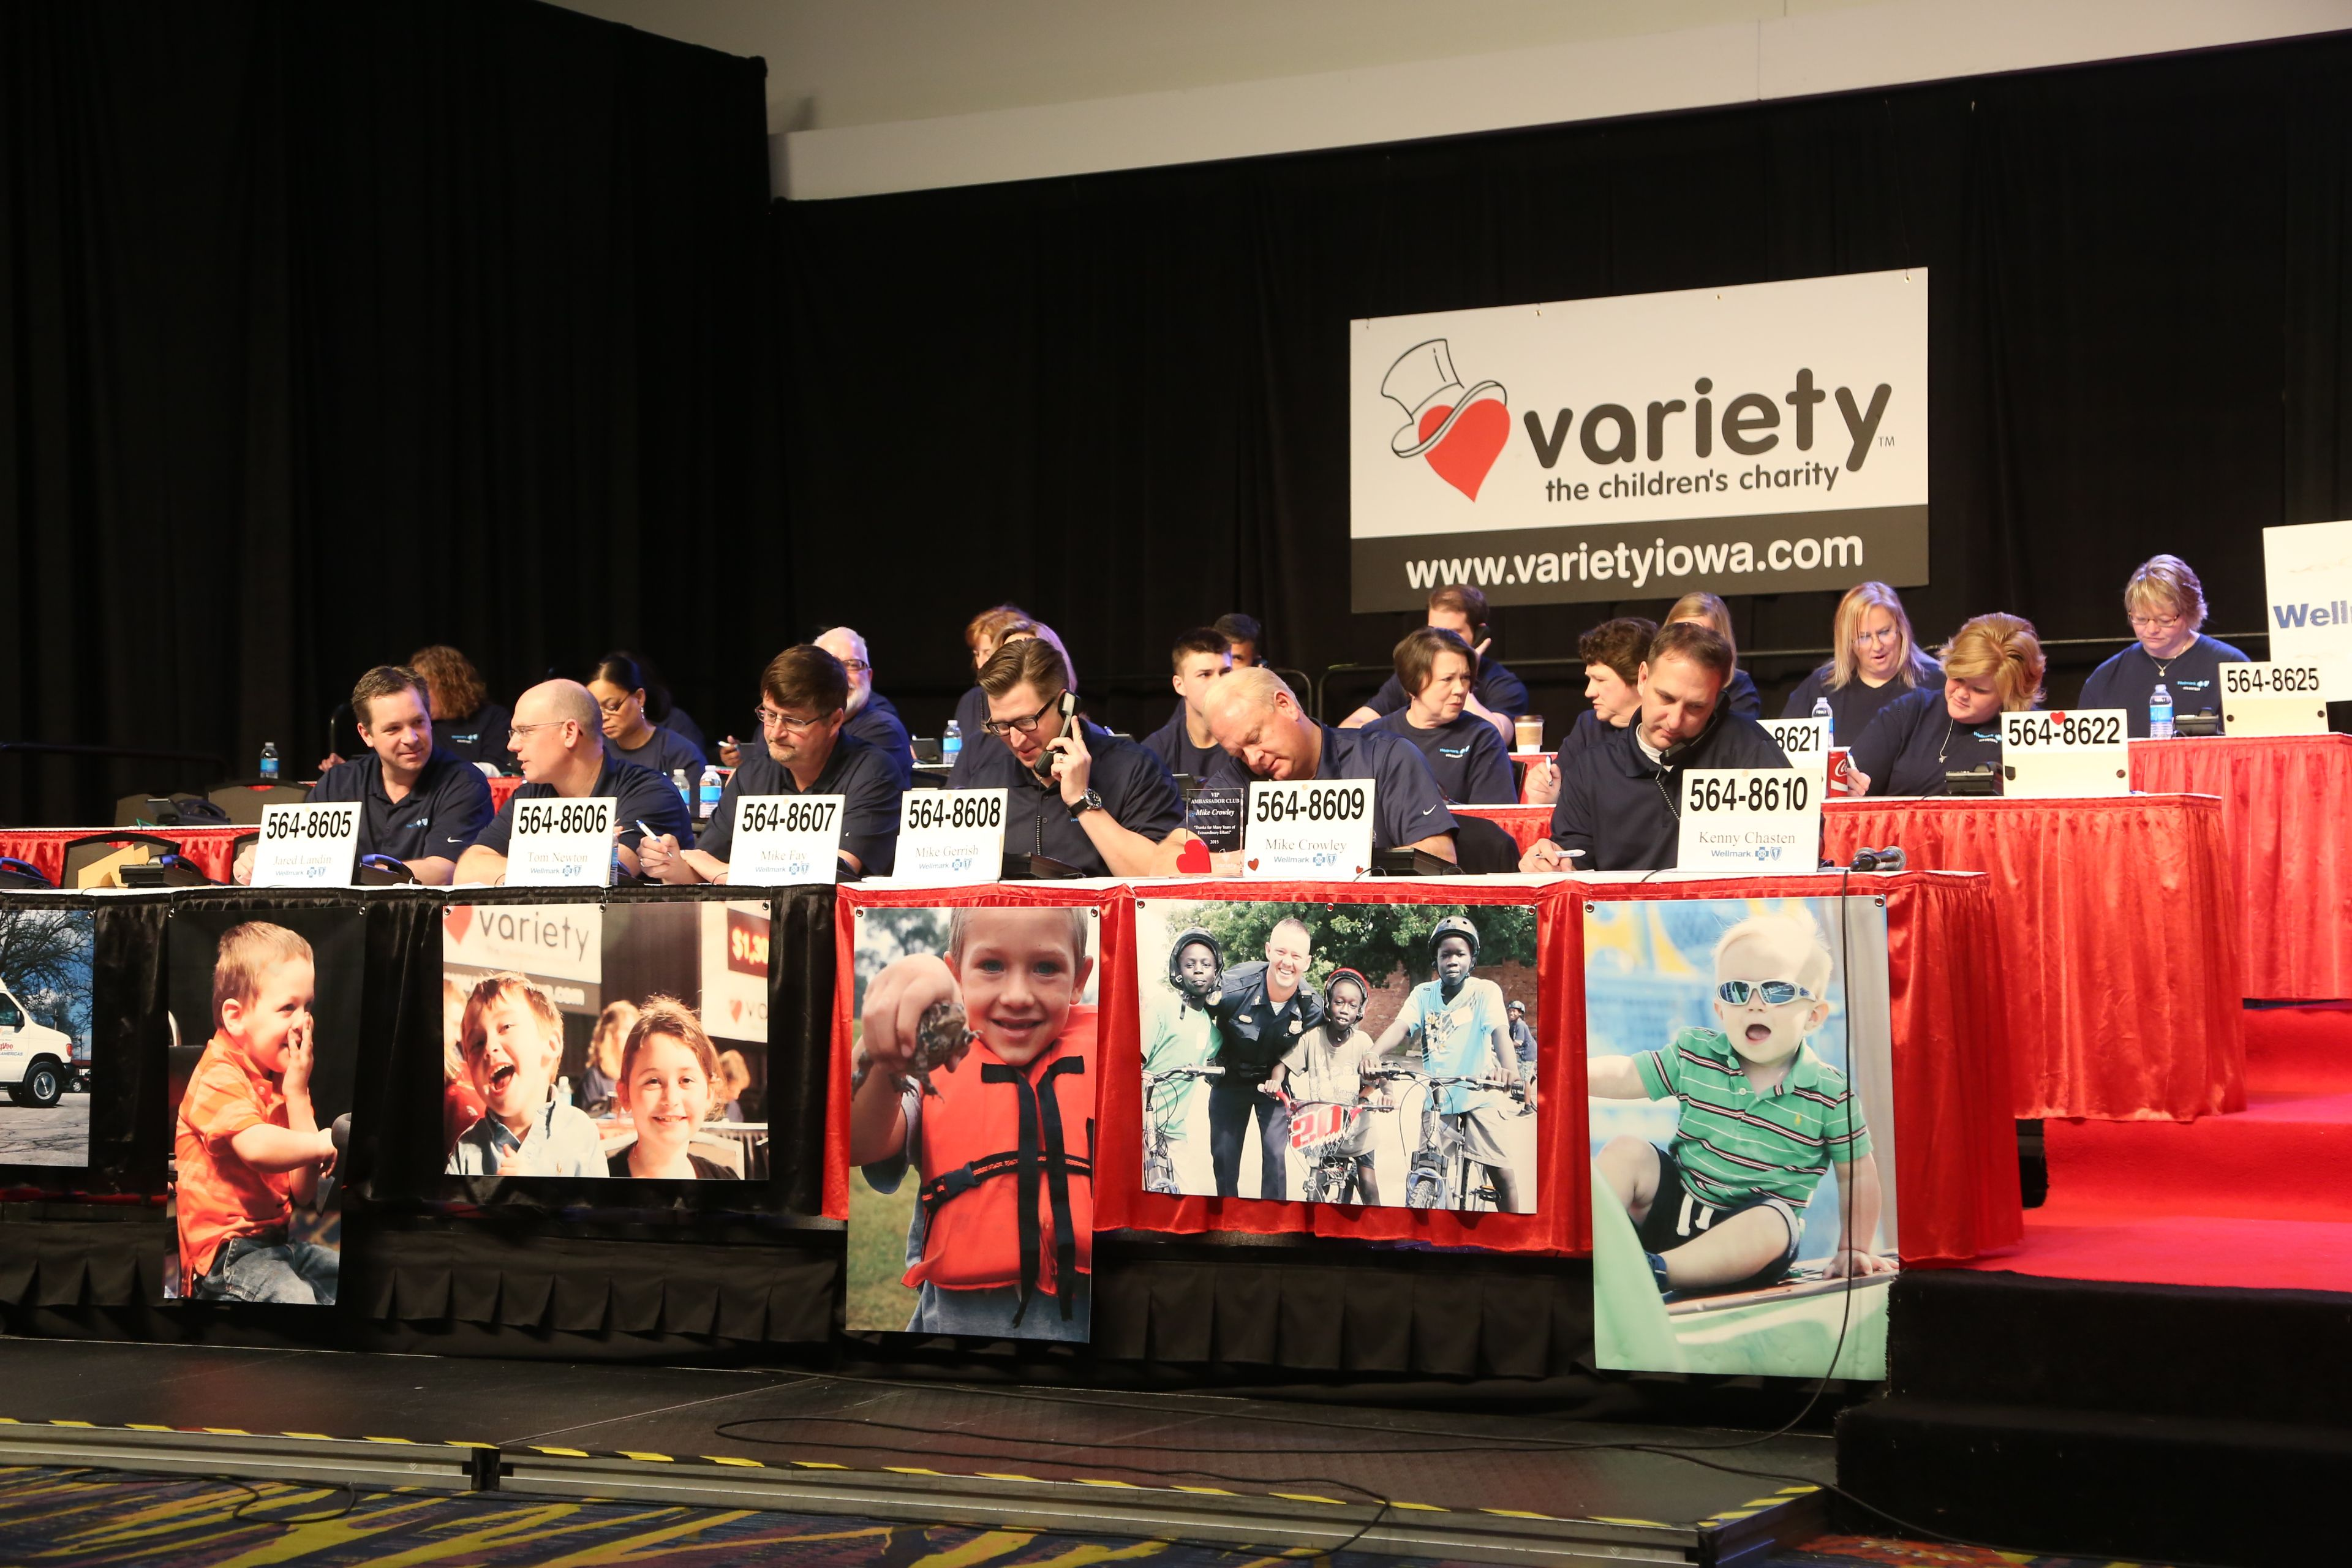 Volunteer to Answer phone as a group or company at the variety telethon